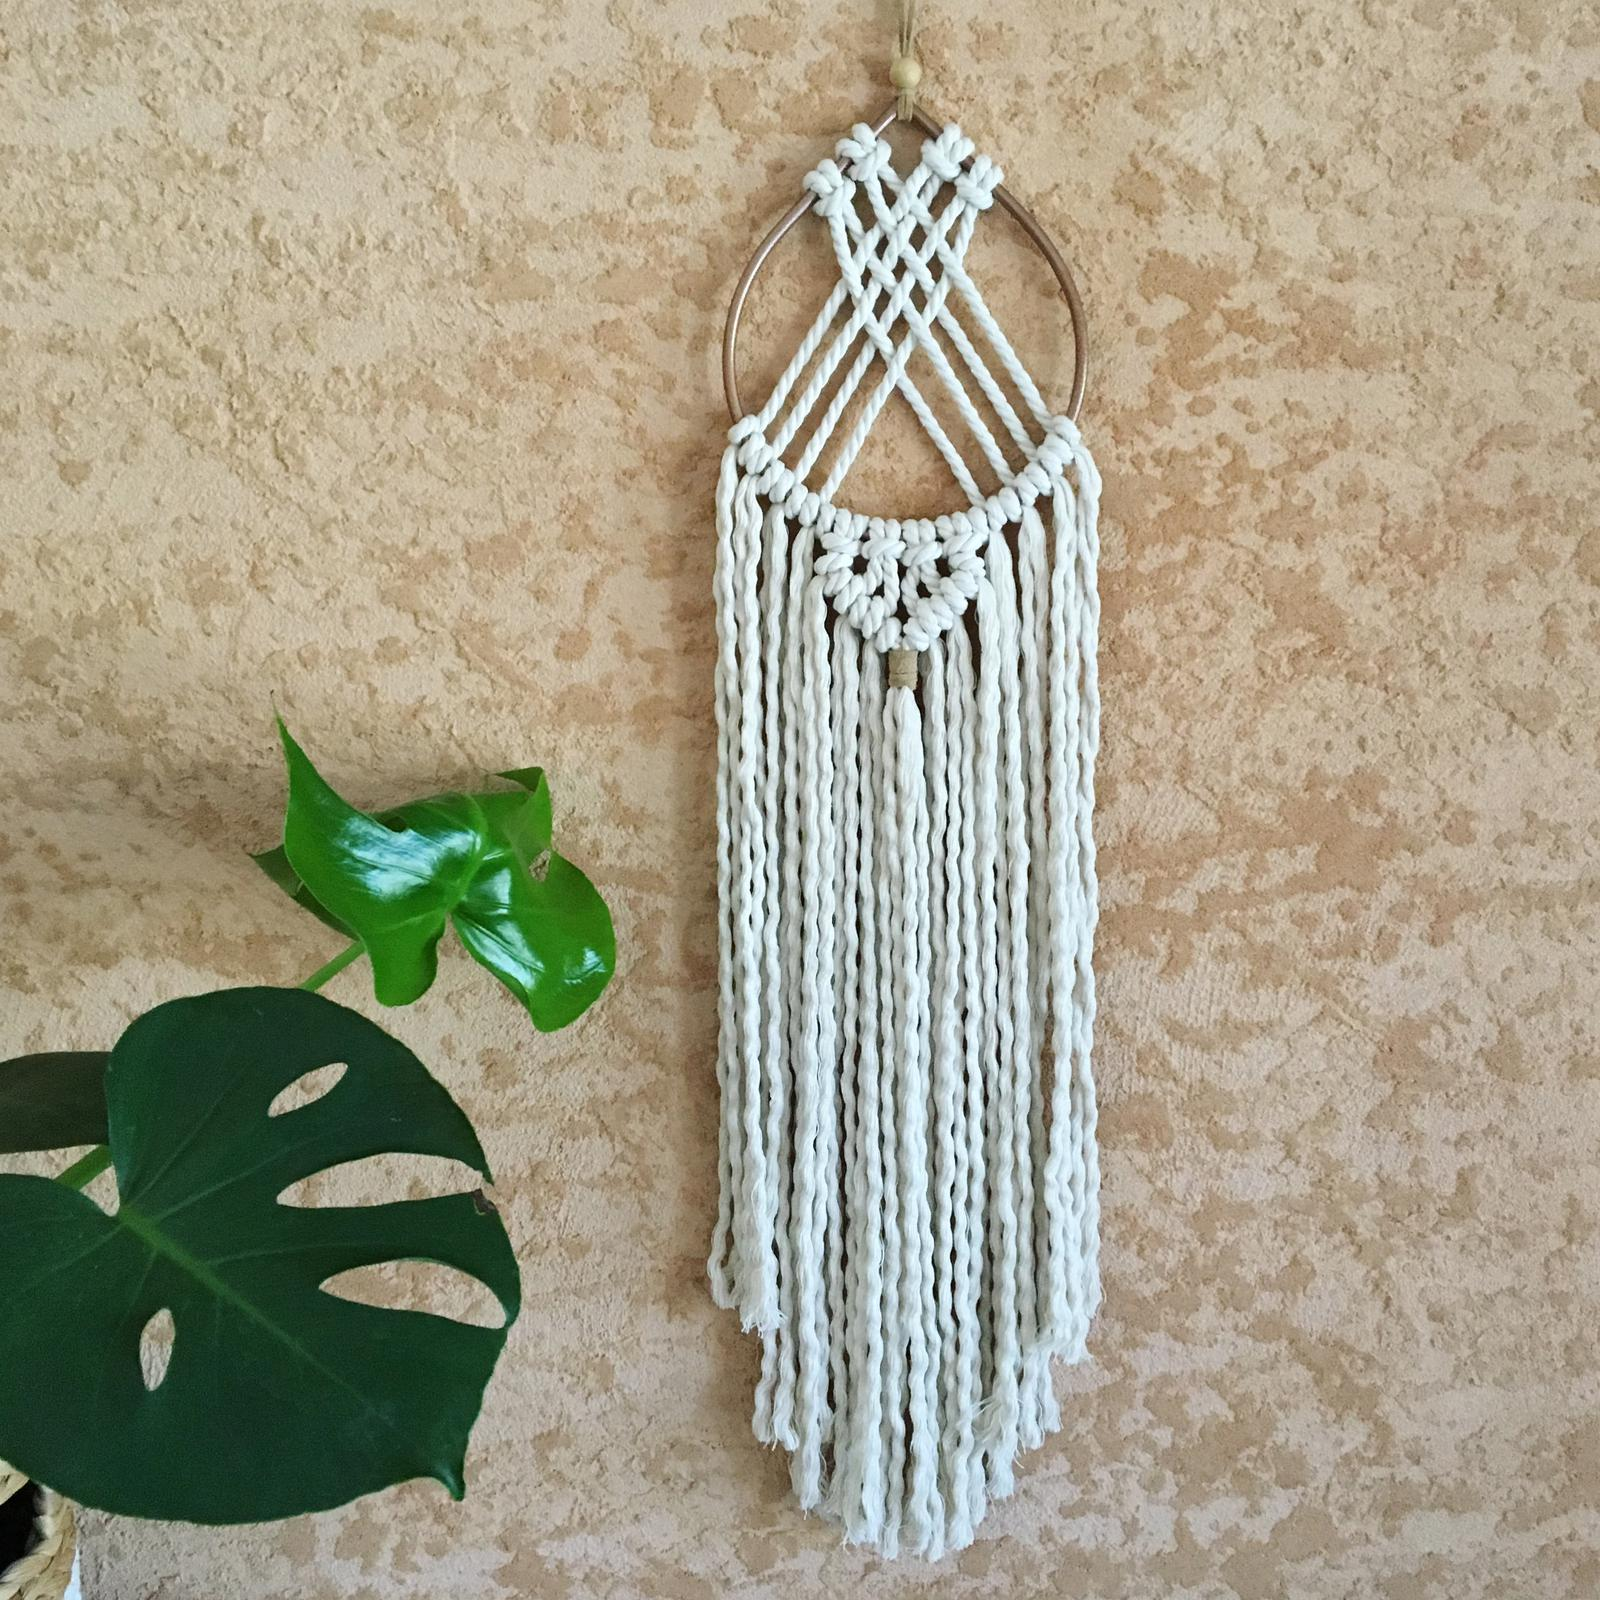 'Teardrop' Macrame Wall hanging